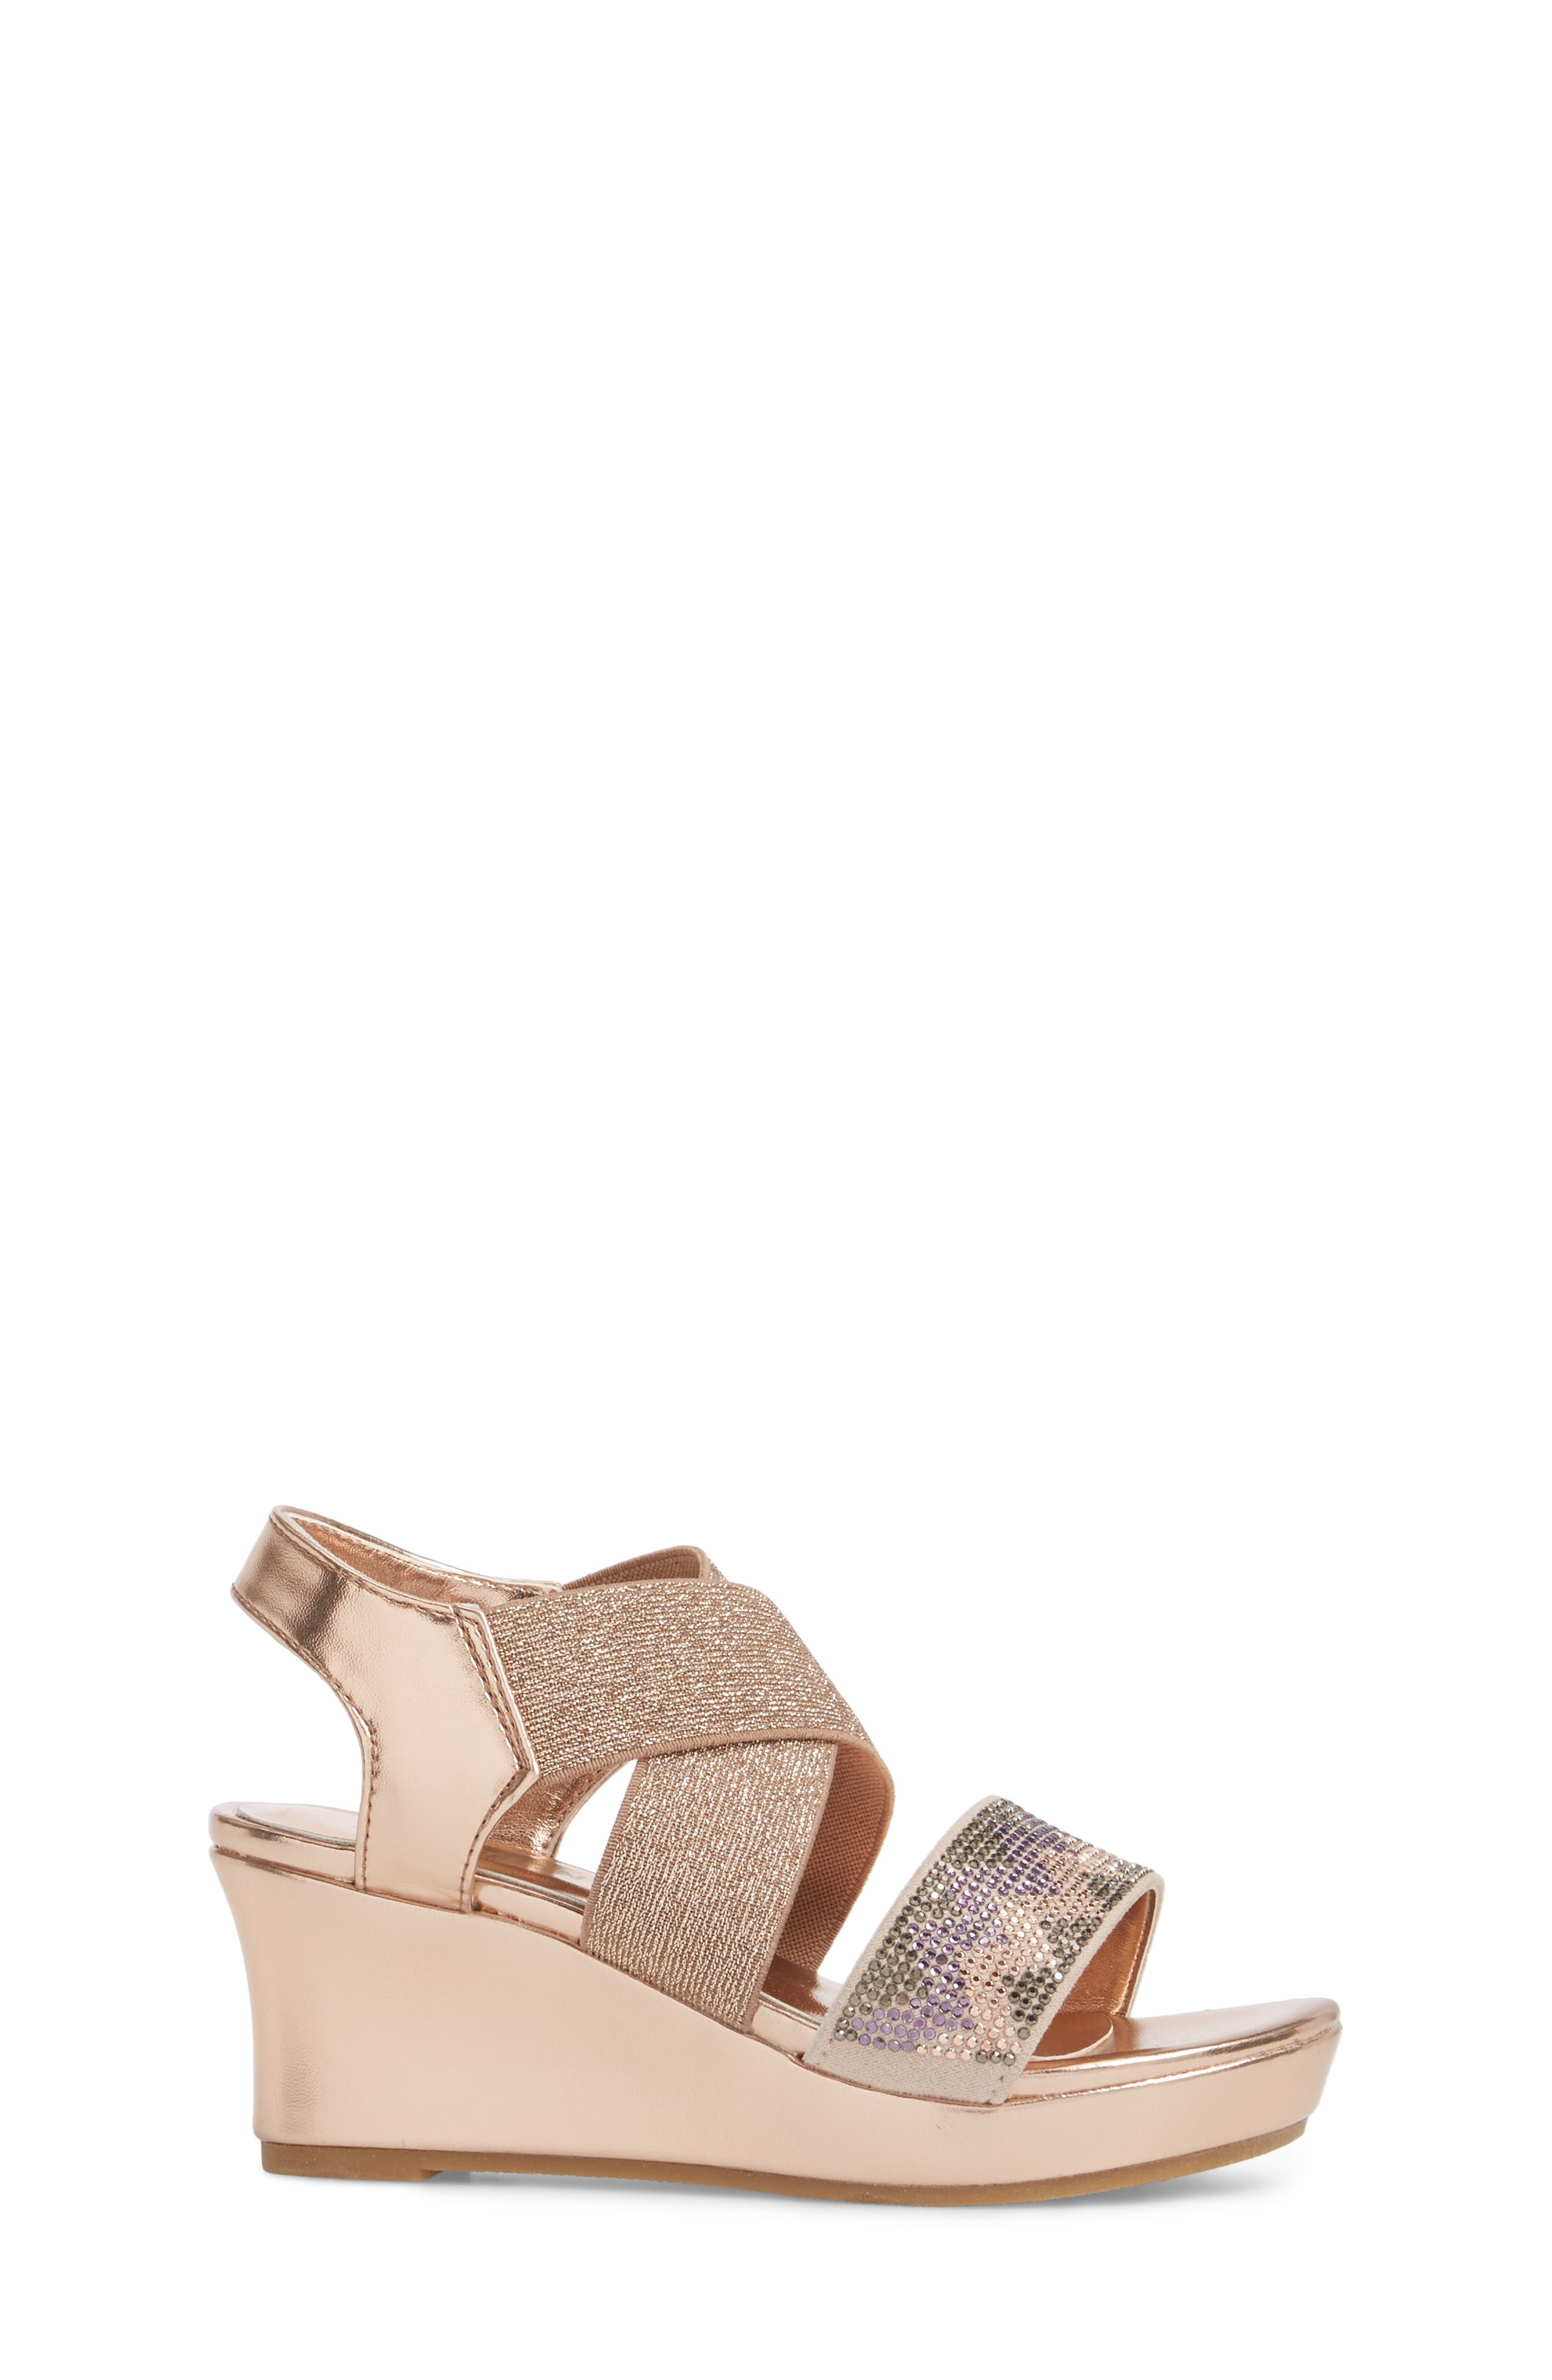 Reaction Kenneth Cole Reed Mamba Embellished Wedge Sandal,                             Alternate thumbnail 3, color,                             Rose Metallic